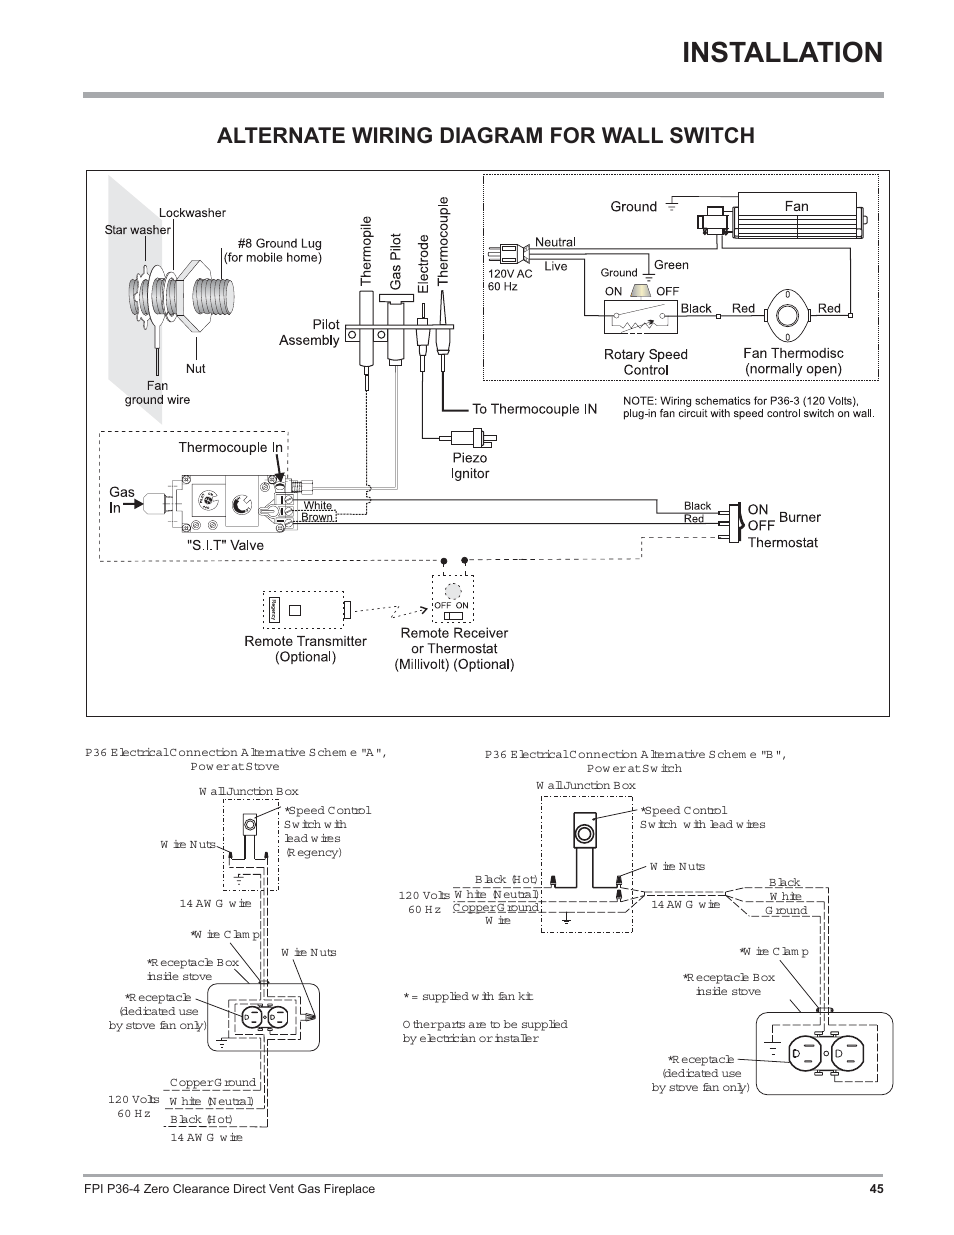 hight resolution of installation alternate wiring diagram for wall switch regency zero clearance direct vent gas fireplace